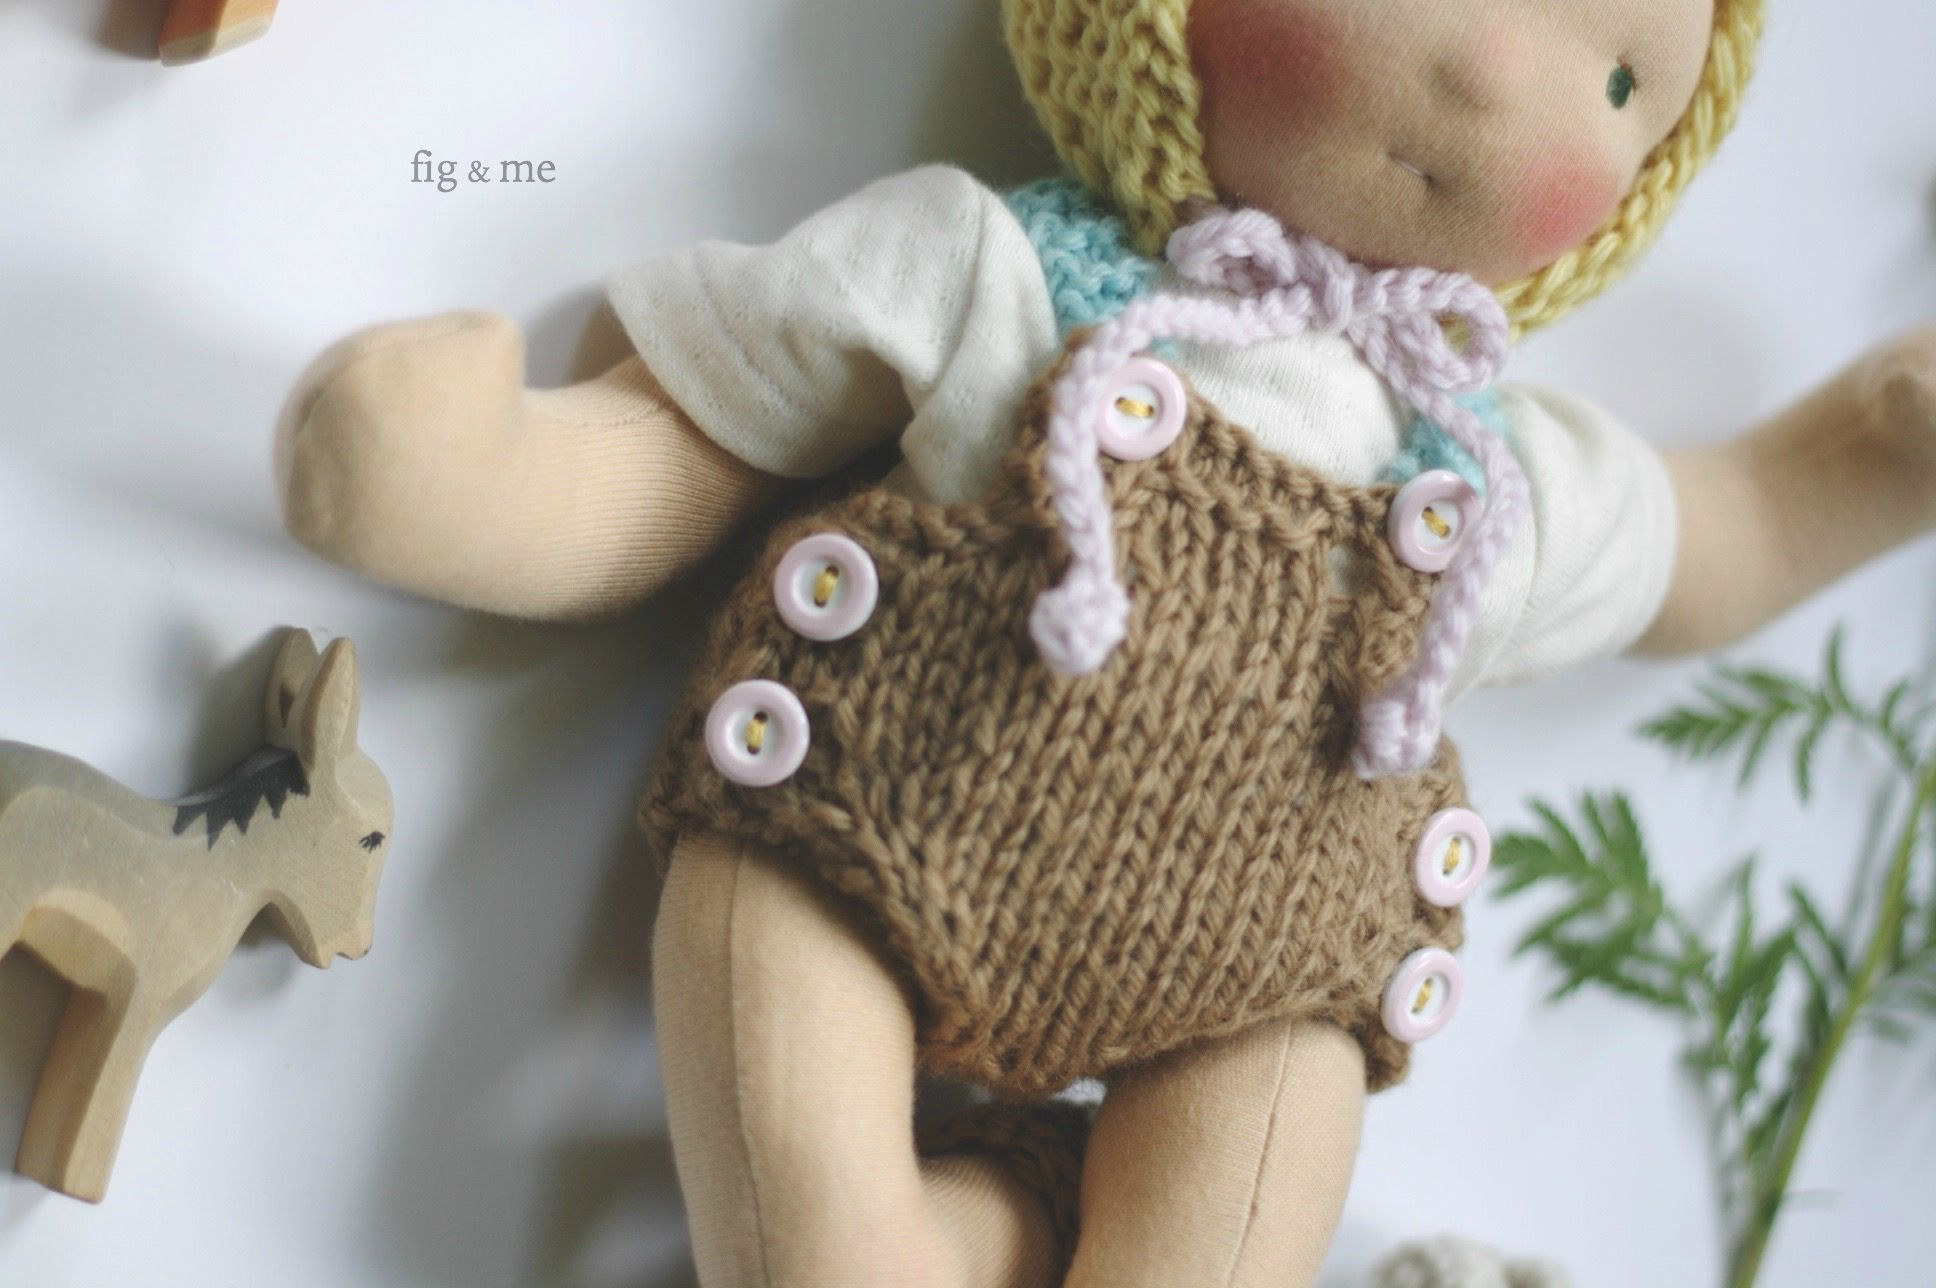 Hand-knitted baby short-alls for a cloth doll, by fig and me.